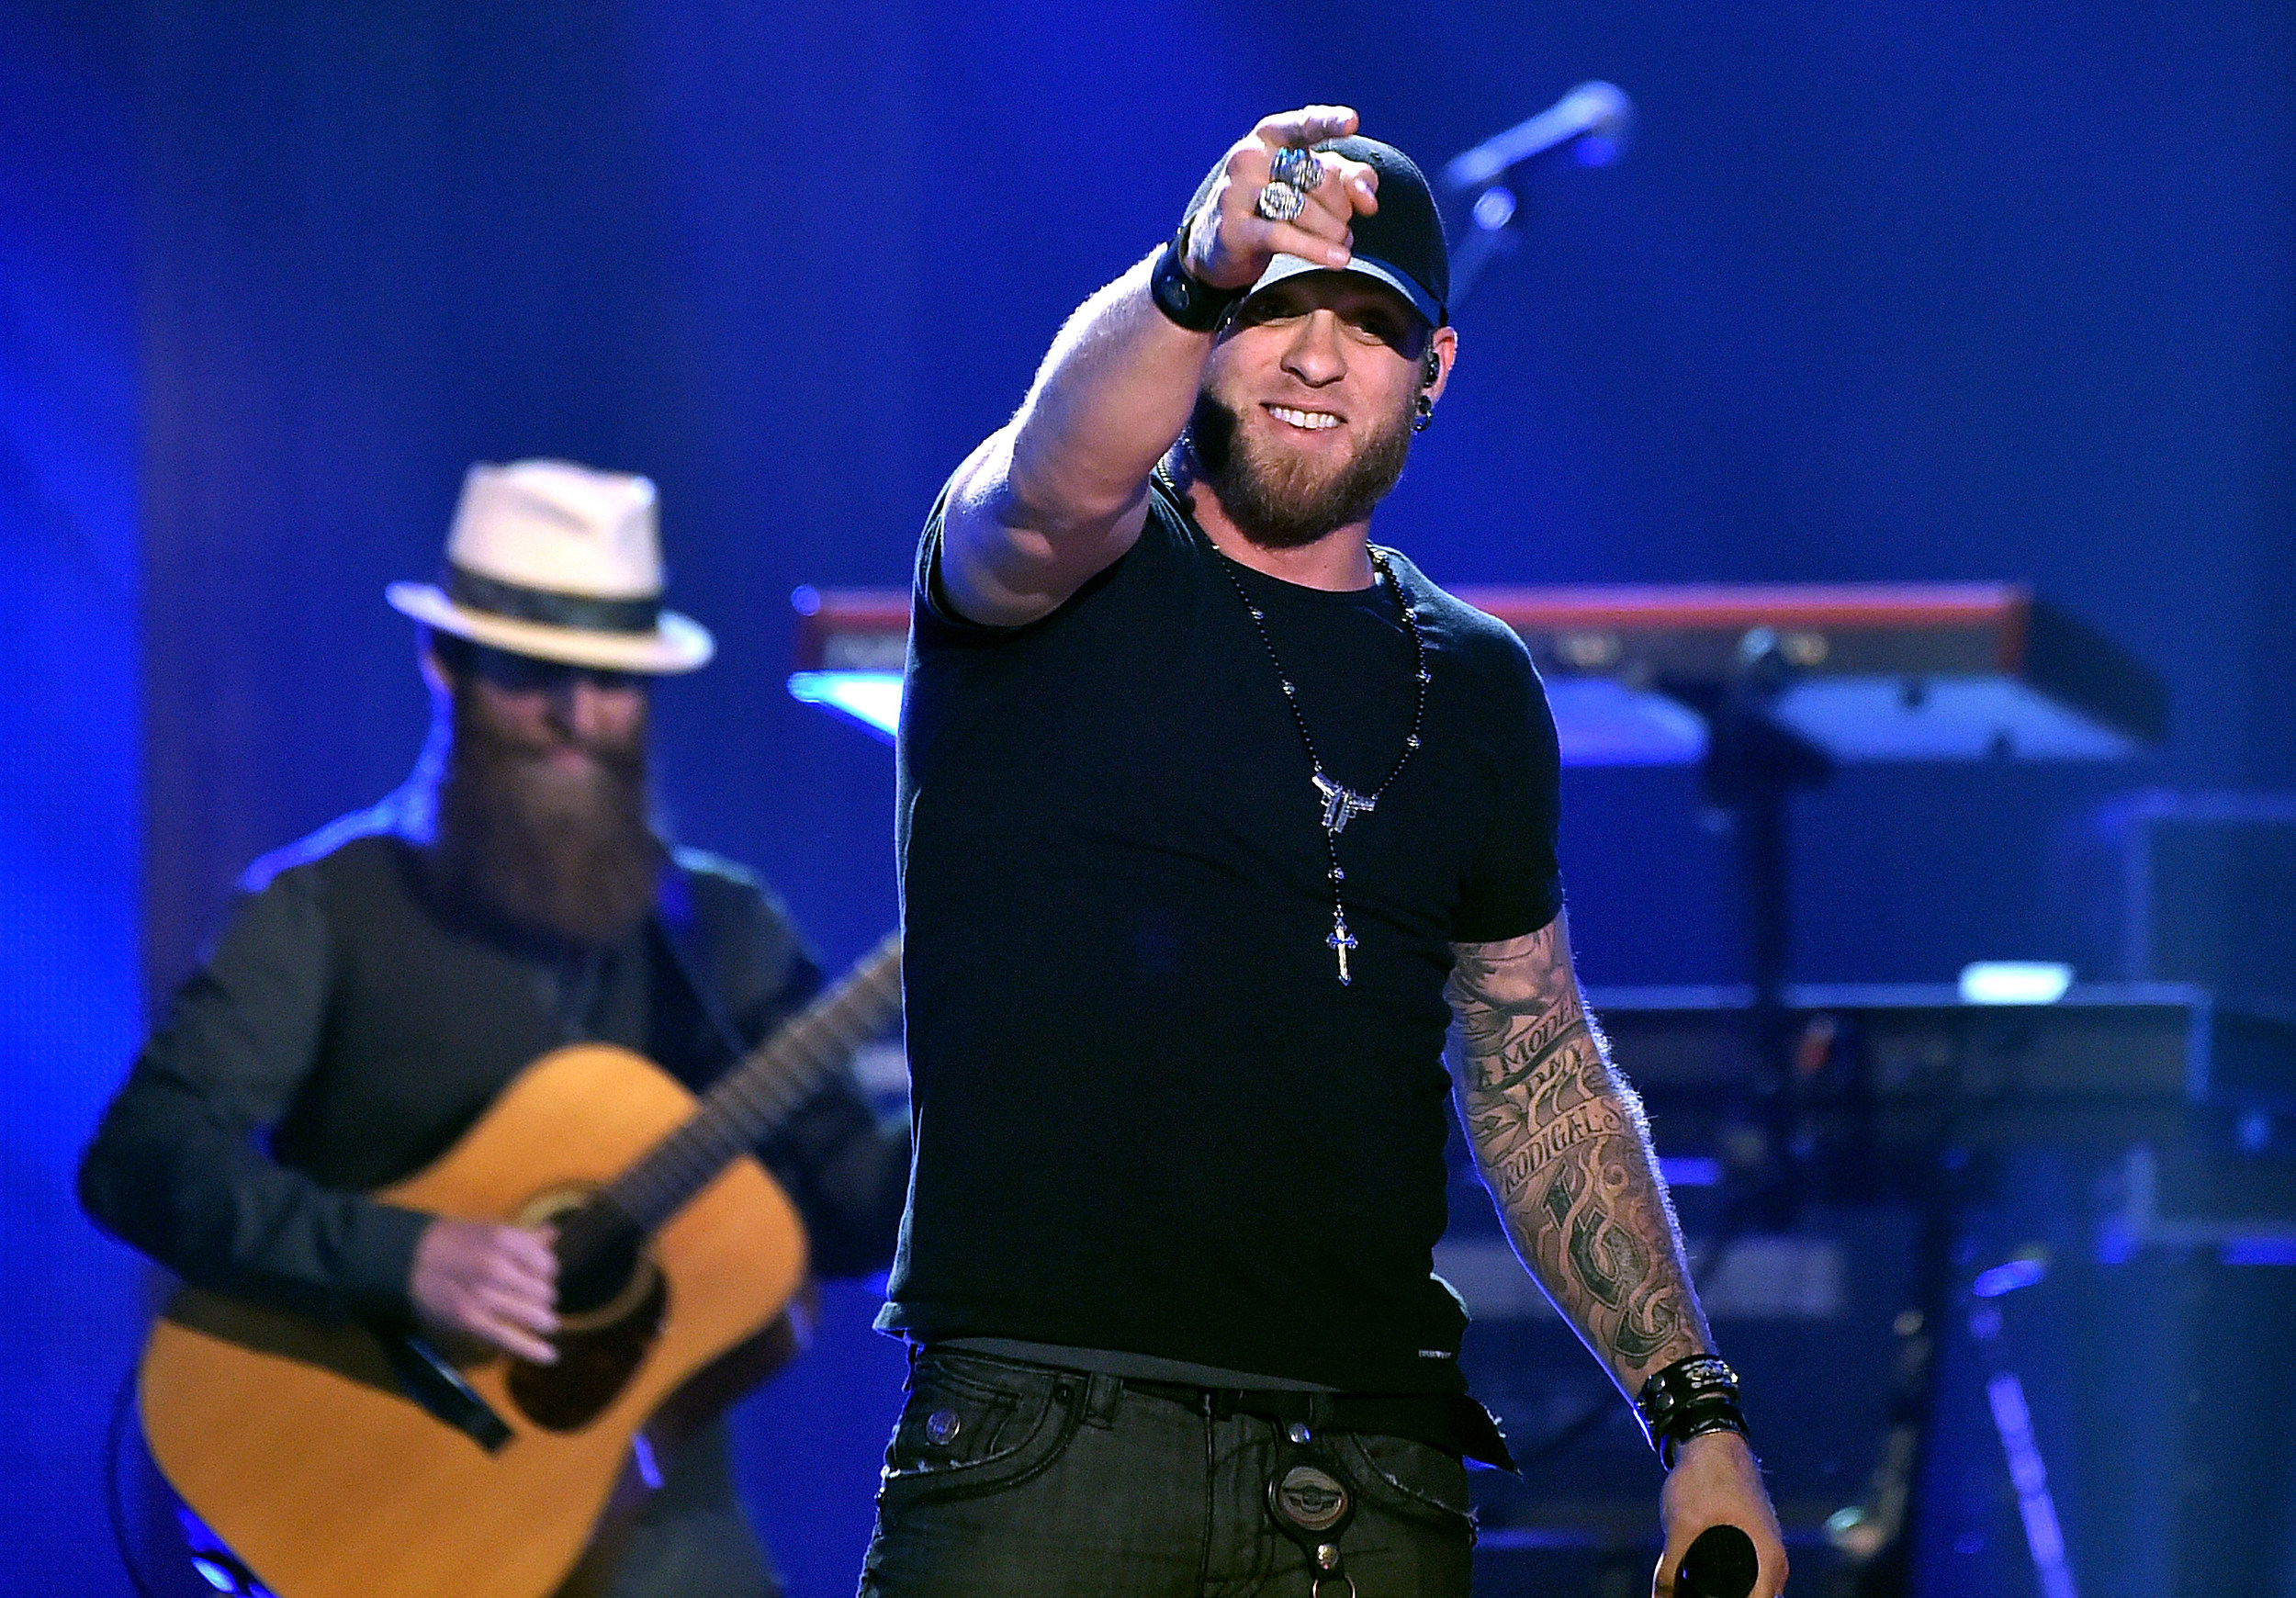 Heres the schedule for the brantley gilbert concert on the ac beach m4hsunfo